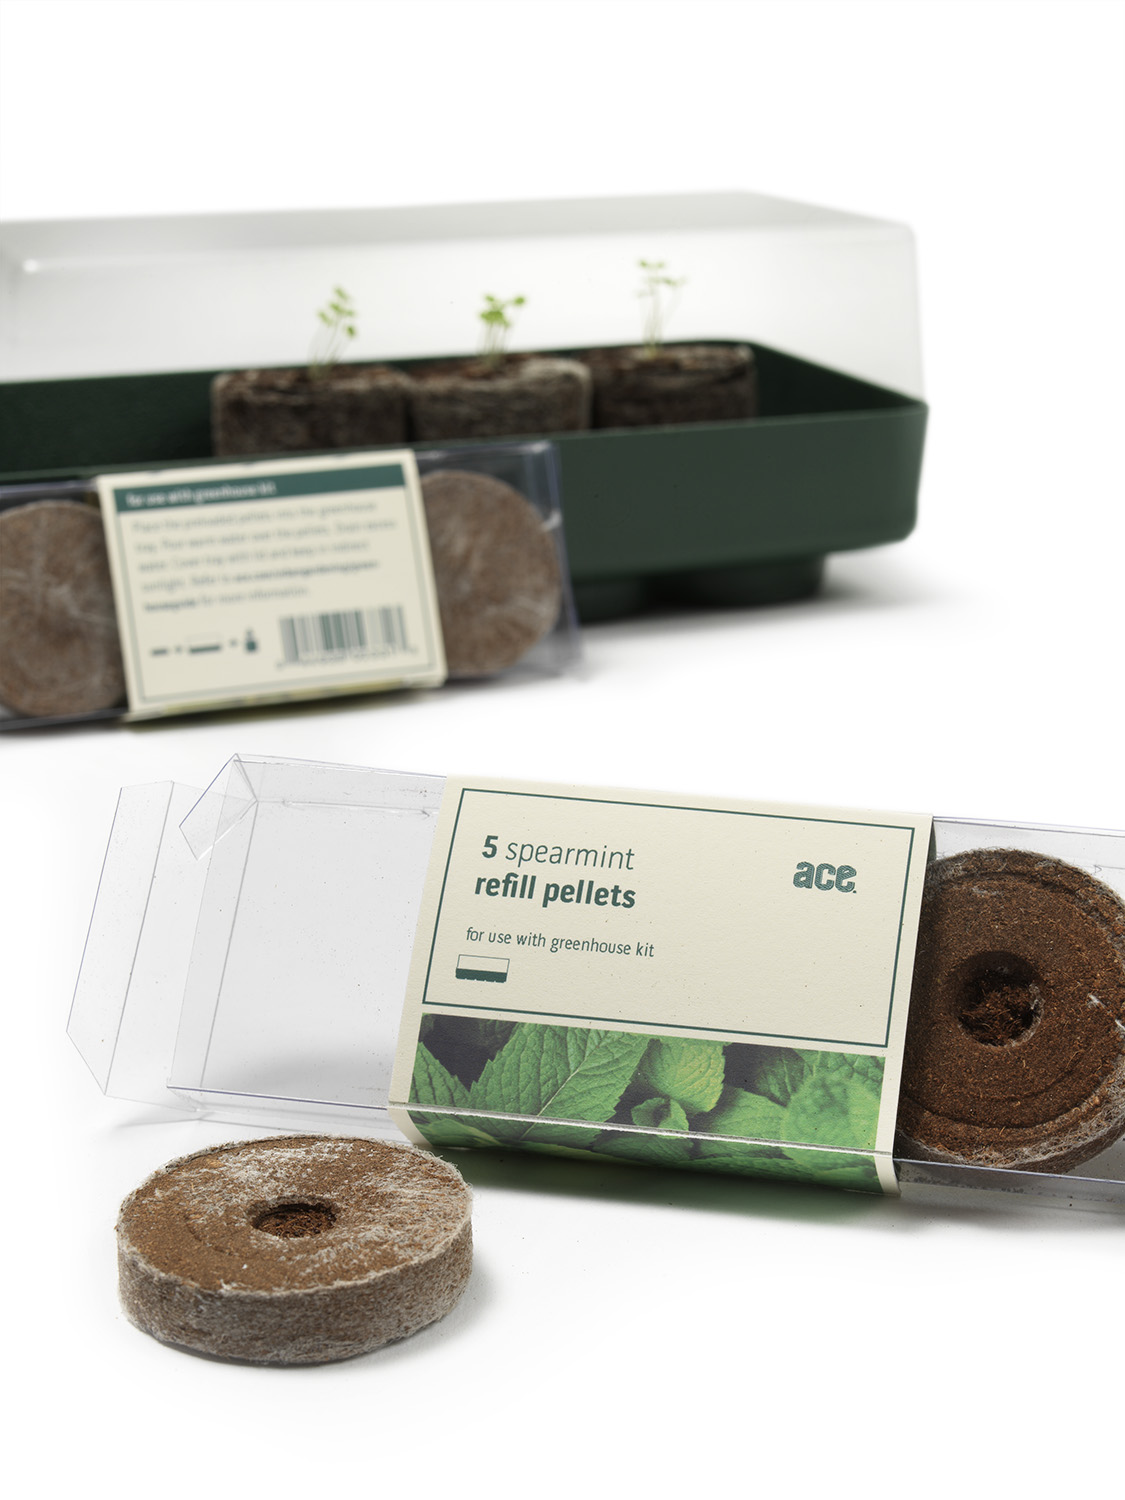 Greenhouse kit comes with soil pellets preloaded with seeds, perfect for growing seedlings anywhere there's a little sun (like the kitchen counter!).